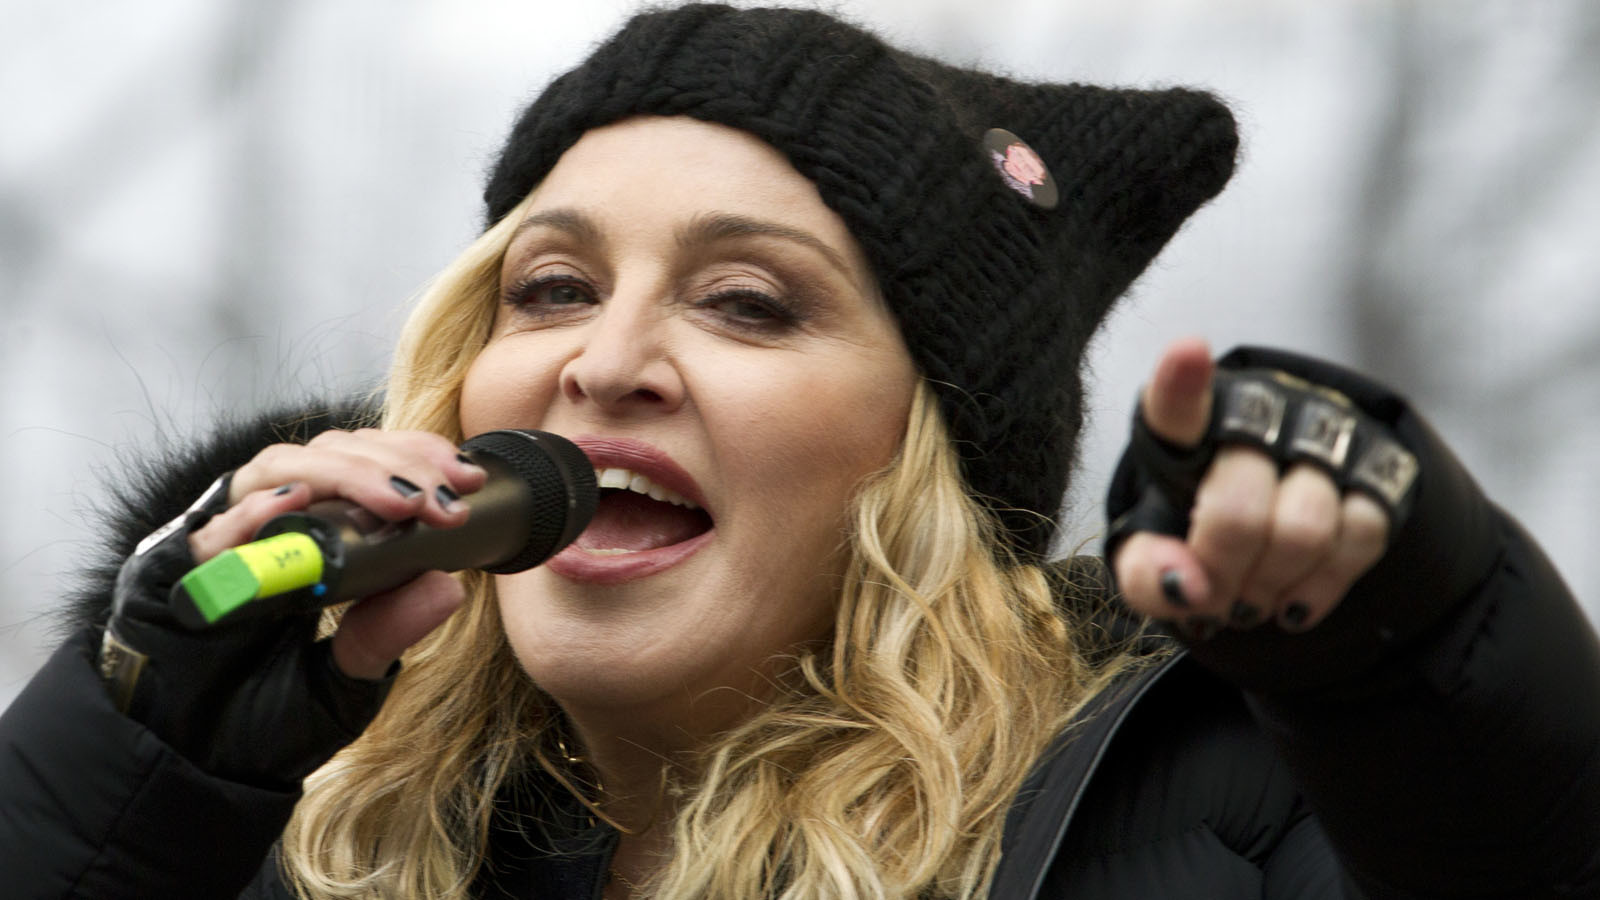 Radio Station Bans Madonna After Speech at Women's March